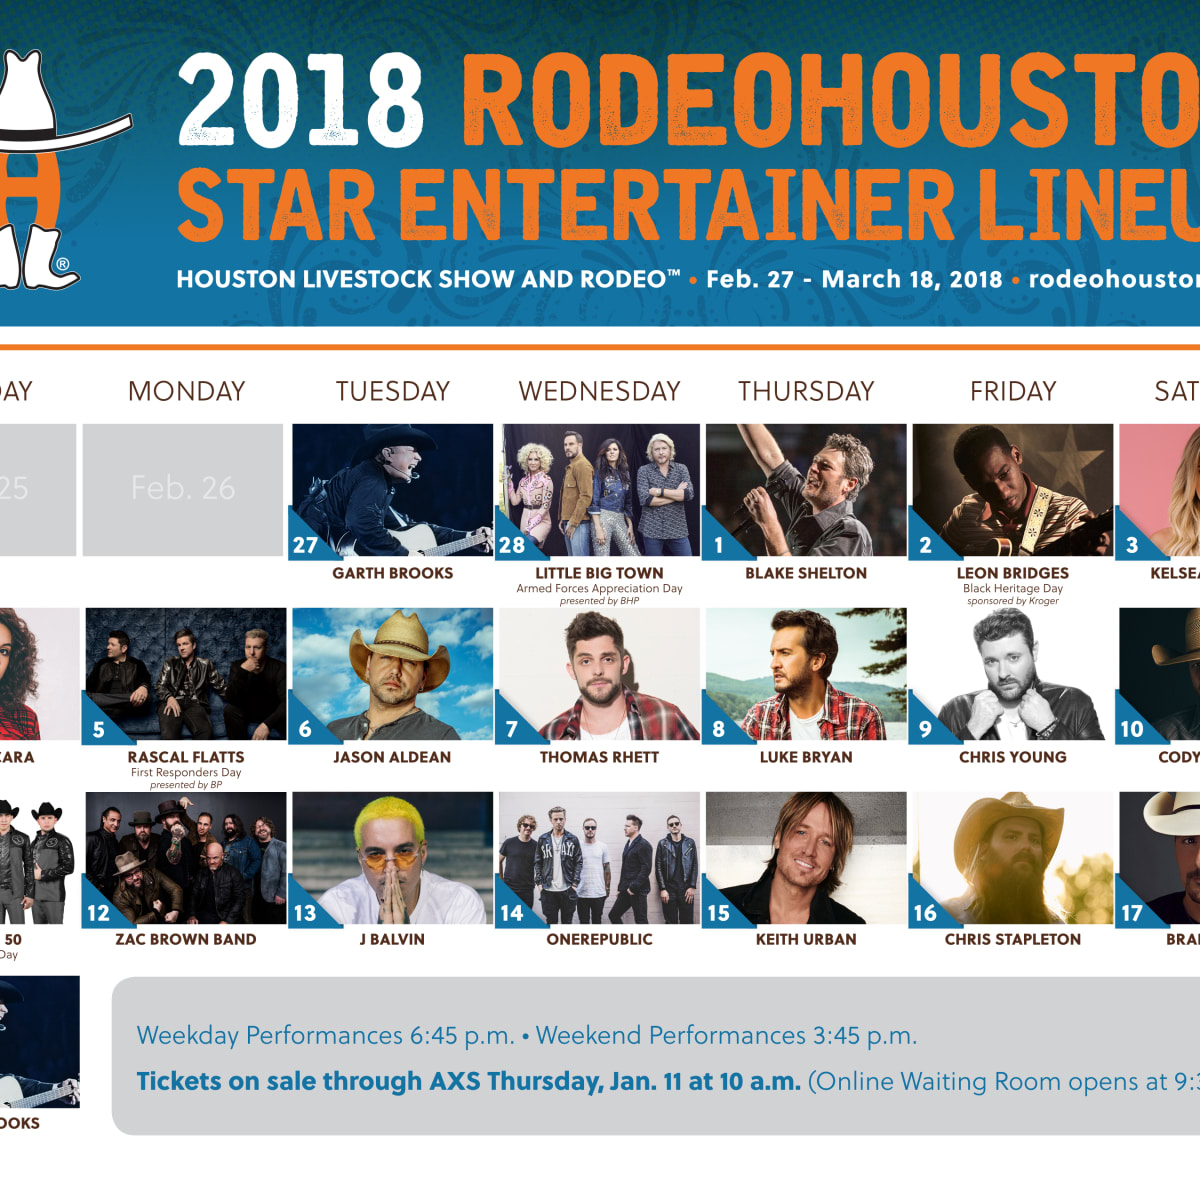 Rodeo_Houston_2018_Lineup